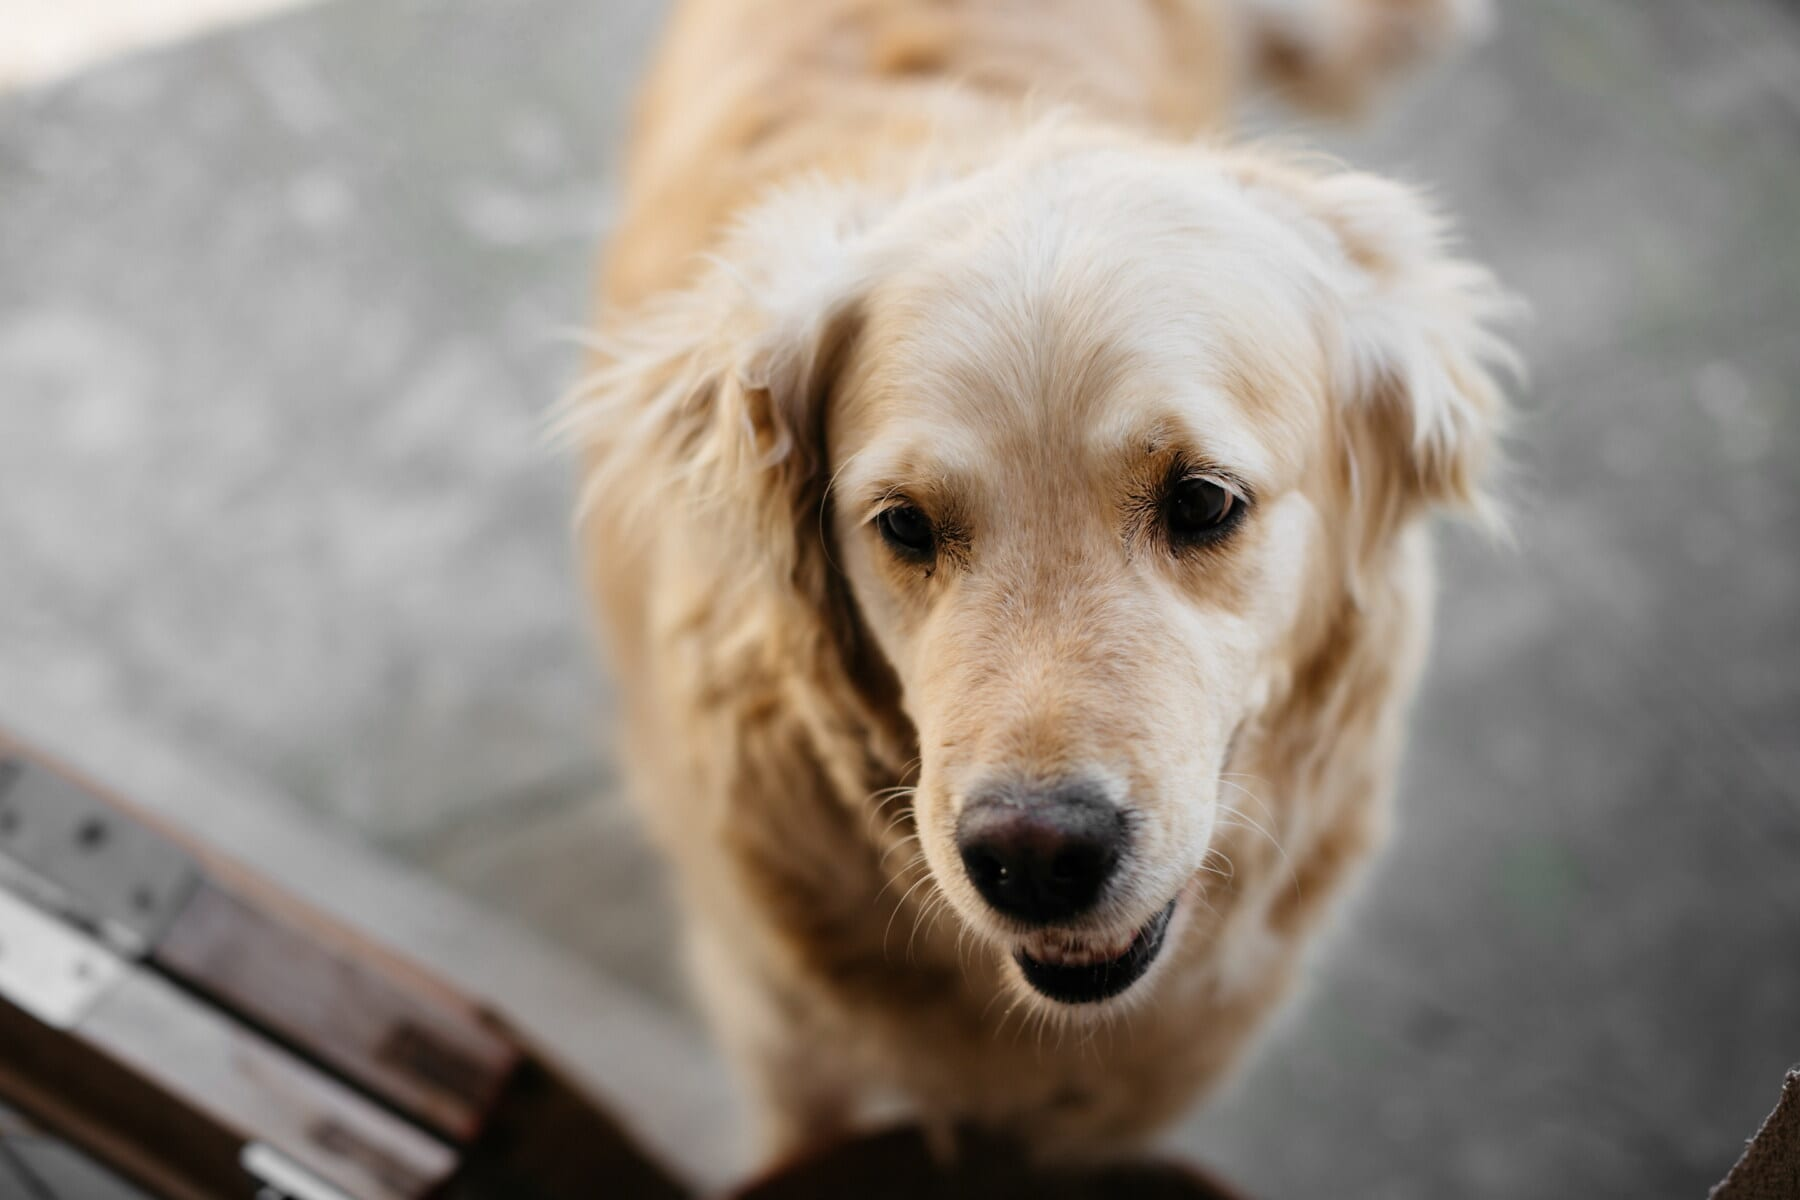 dog, cute, retriever, hunting dog, eye, funny, animal, portrait, looking, hair